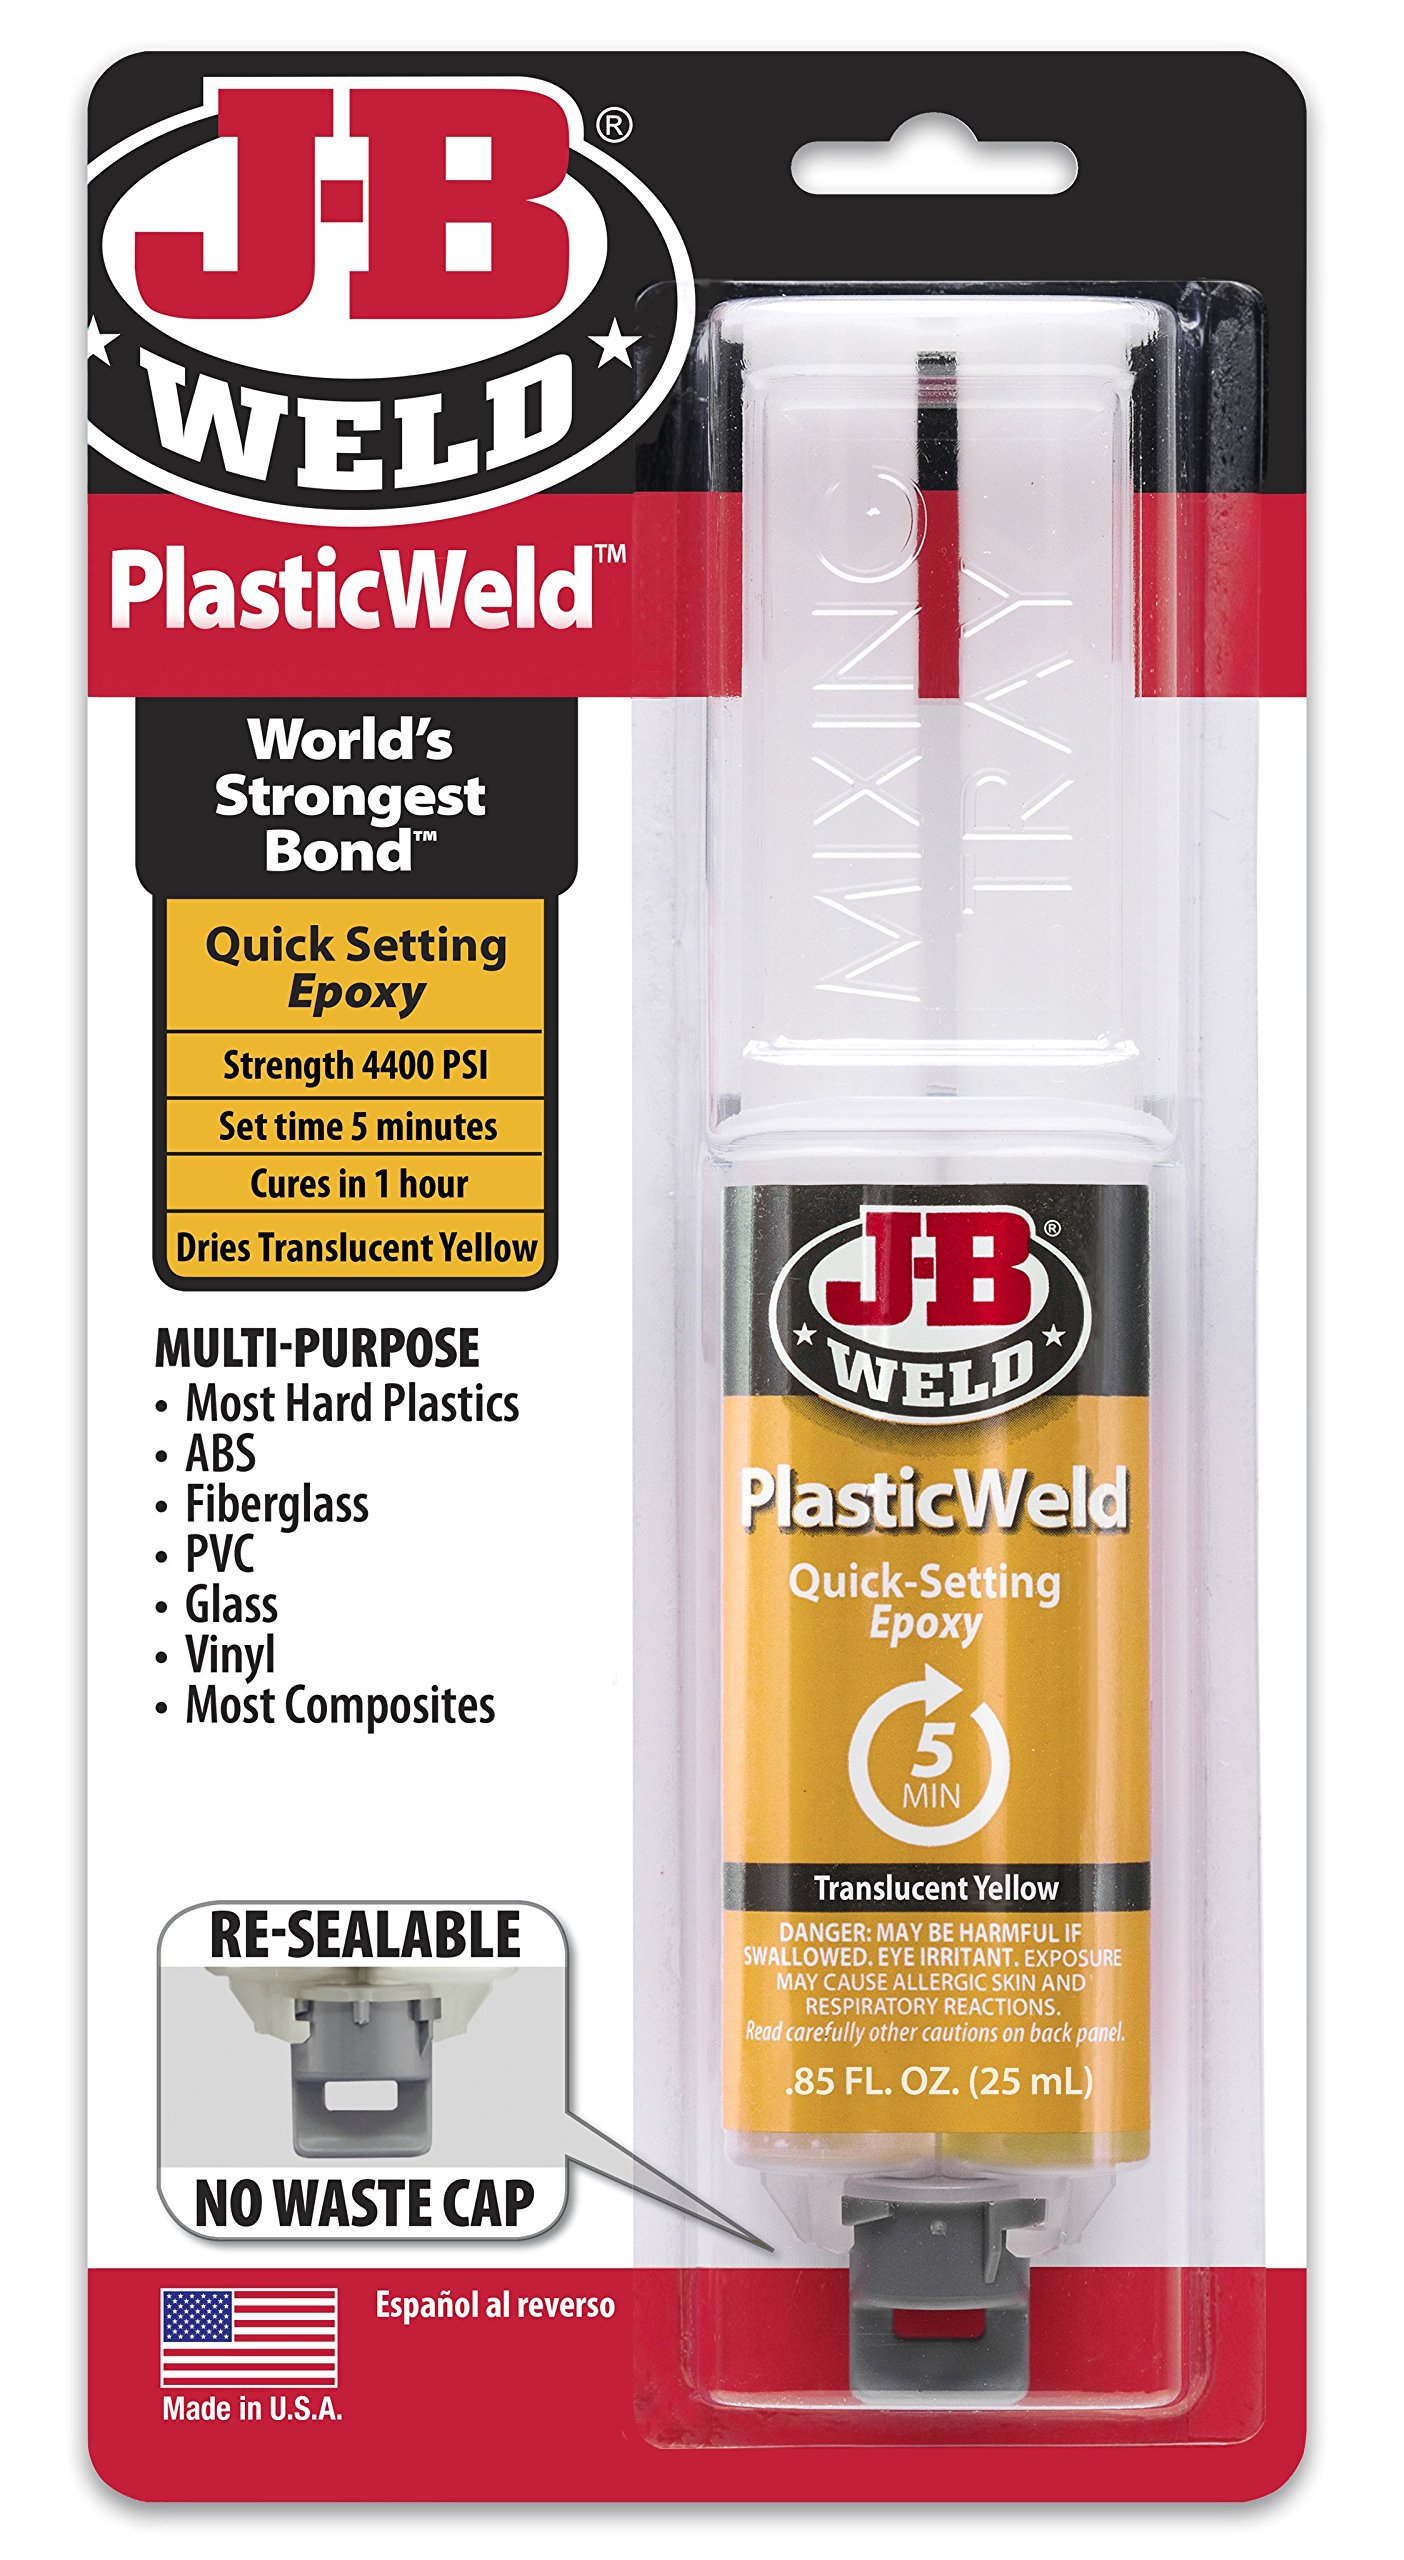 J-B Weld 50132 PlasticWeld Quick-Setting Epoxy Syringe -  Translucent Yellow - 25 ml